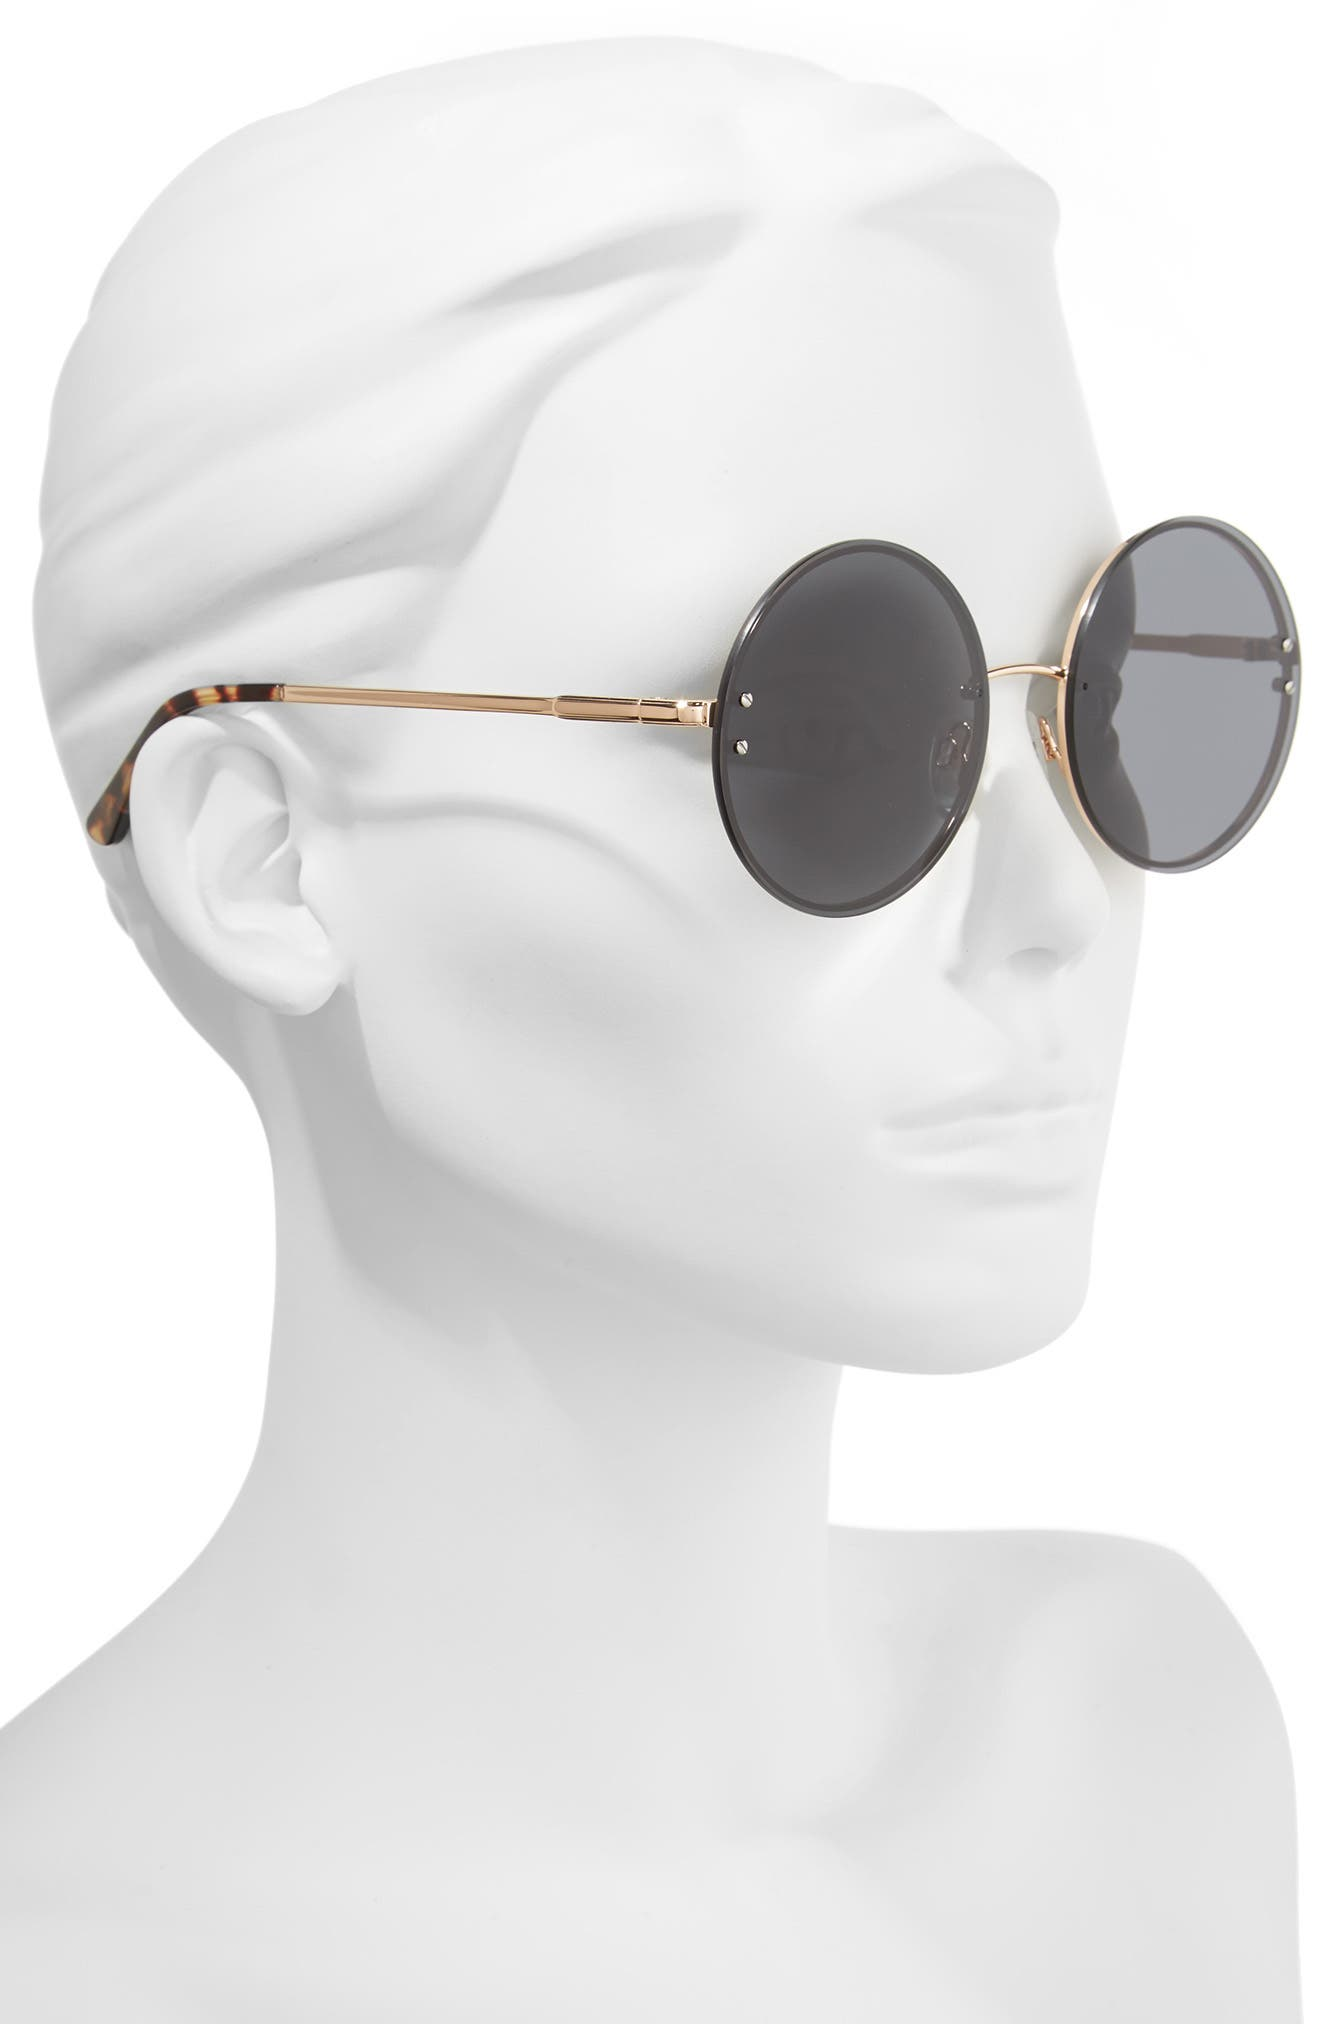 Ariana 58mm Round Sunglasses,                             Alternate thumbnail 2, color,                             SOLID SMOKE